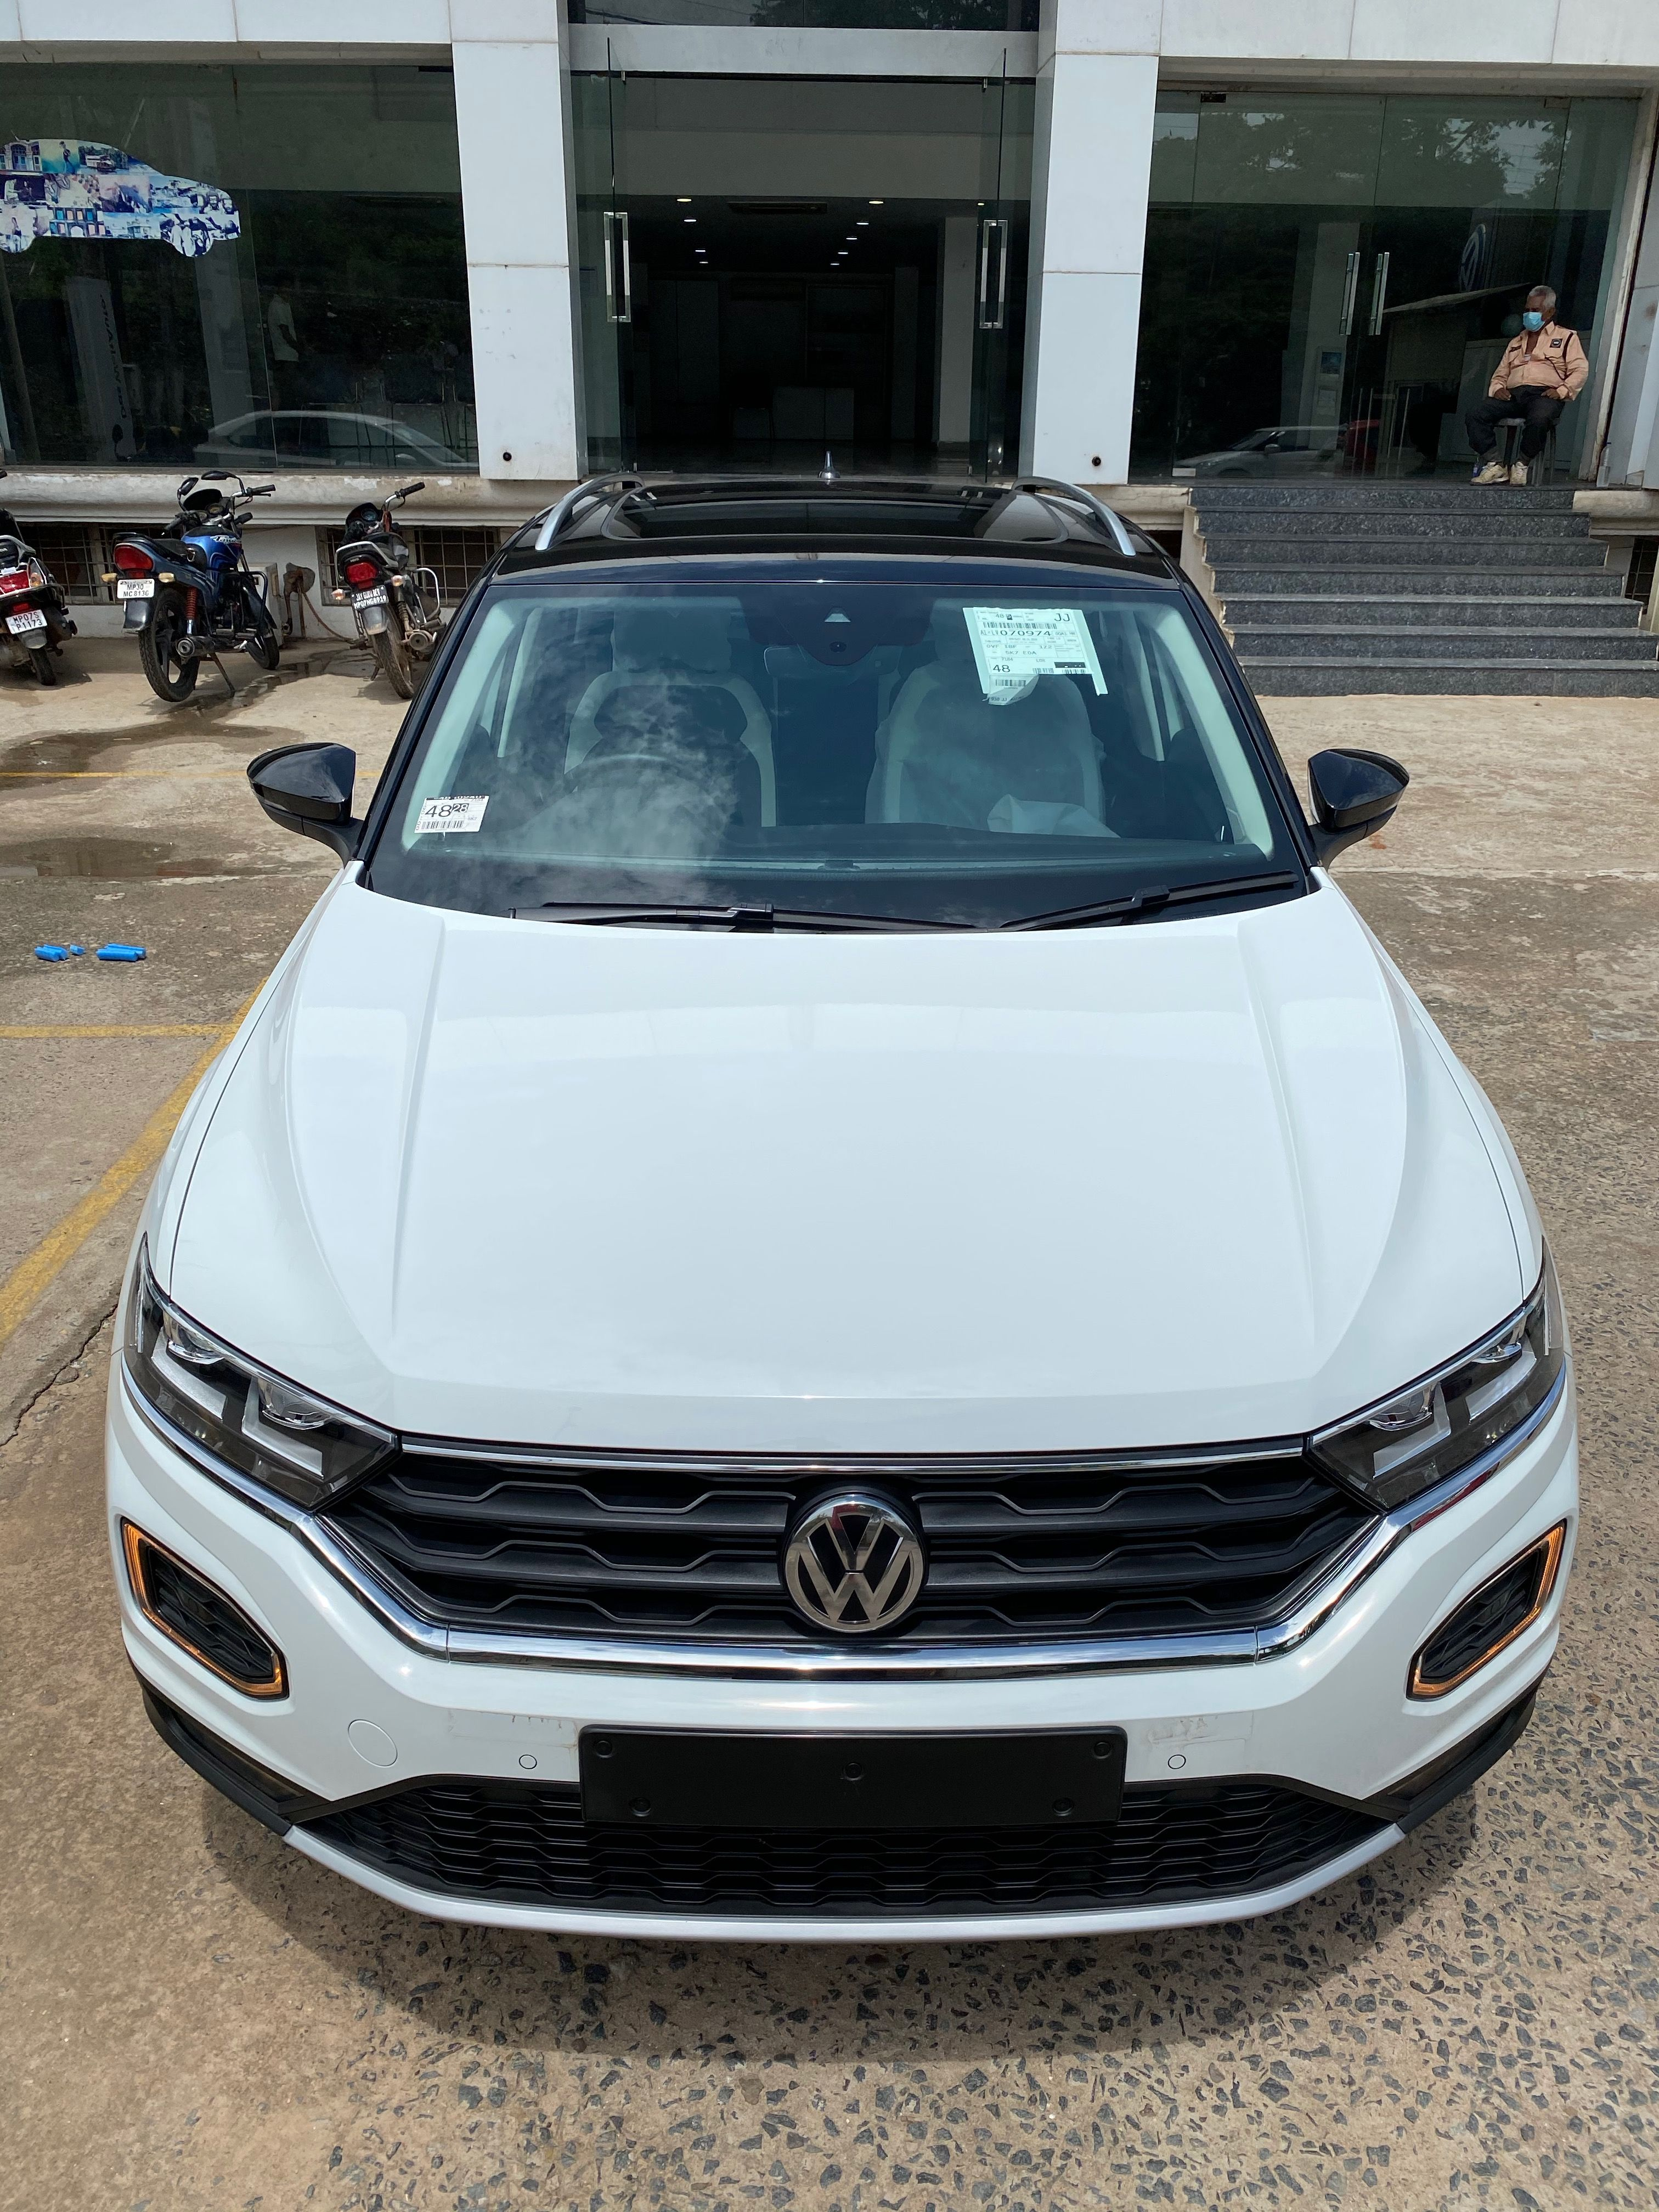 Volkswagen T Roc 2020 23 Lakh Real Life Review In 2020 Volkswagen Crossover Suv Subcompact